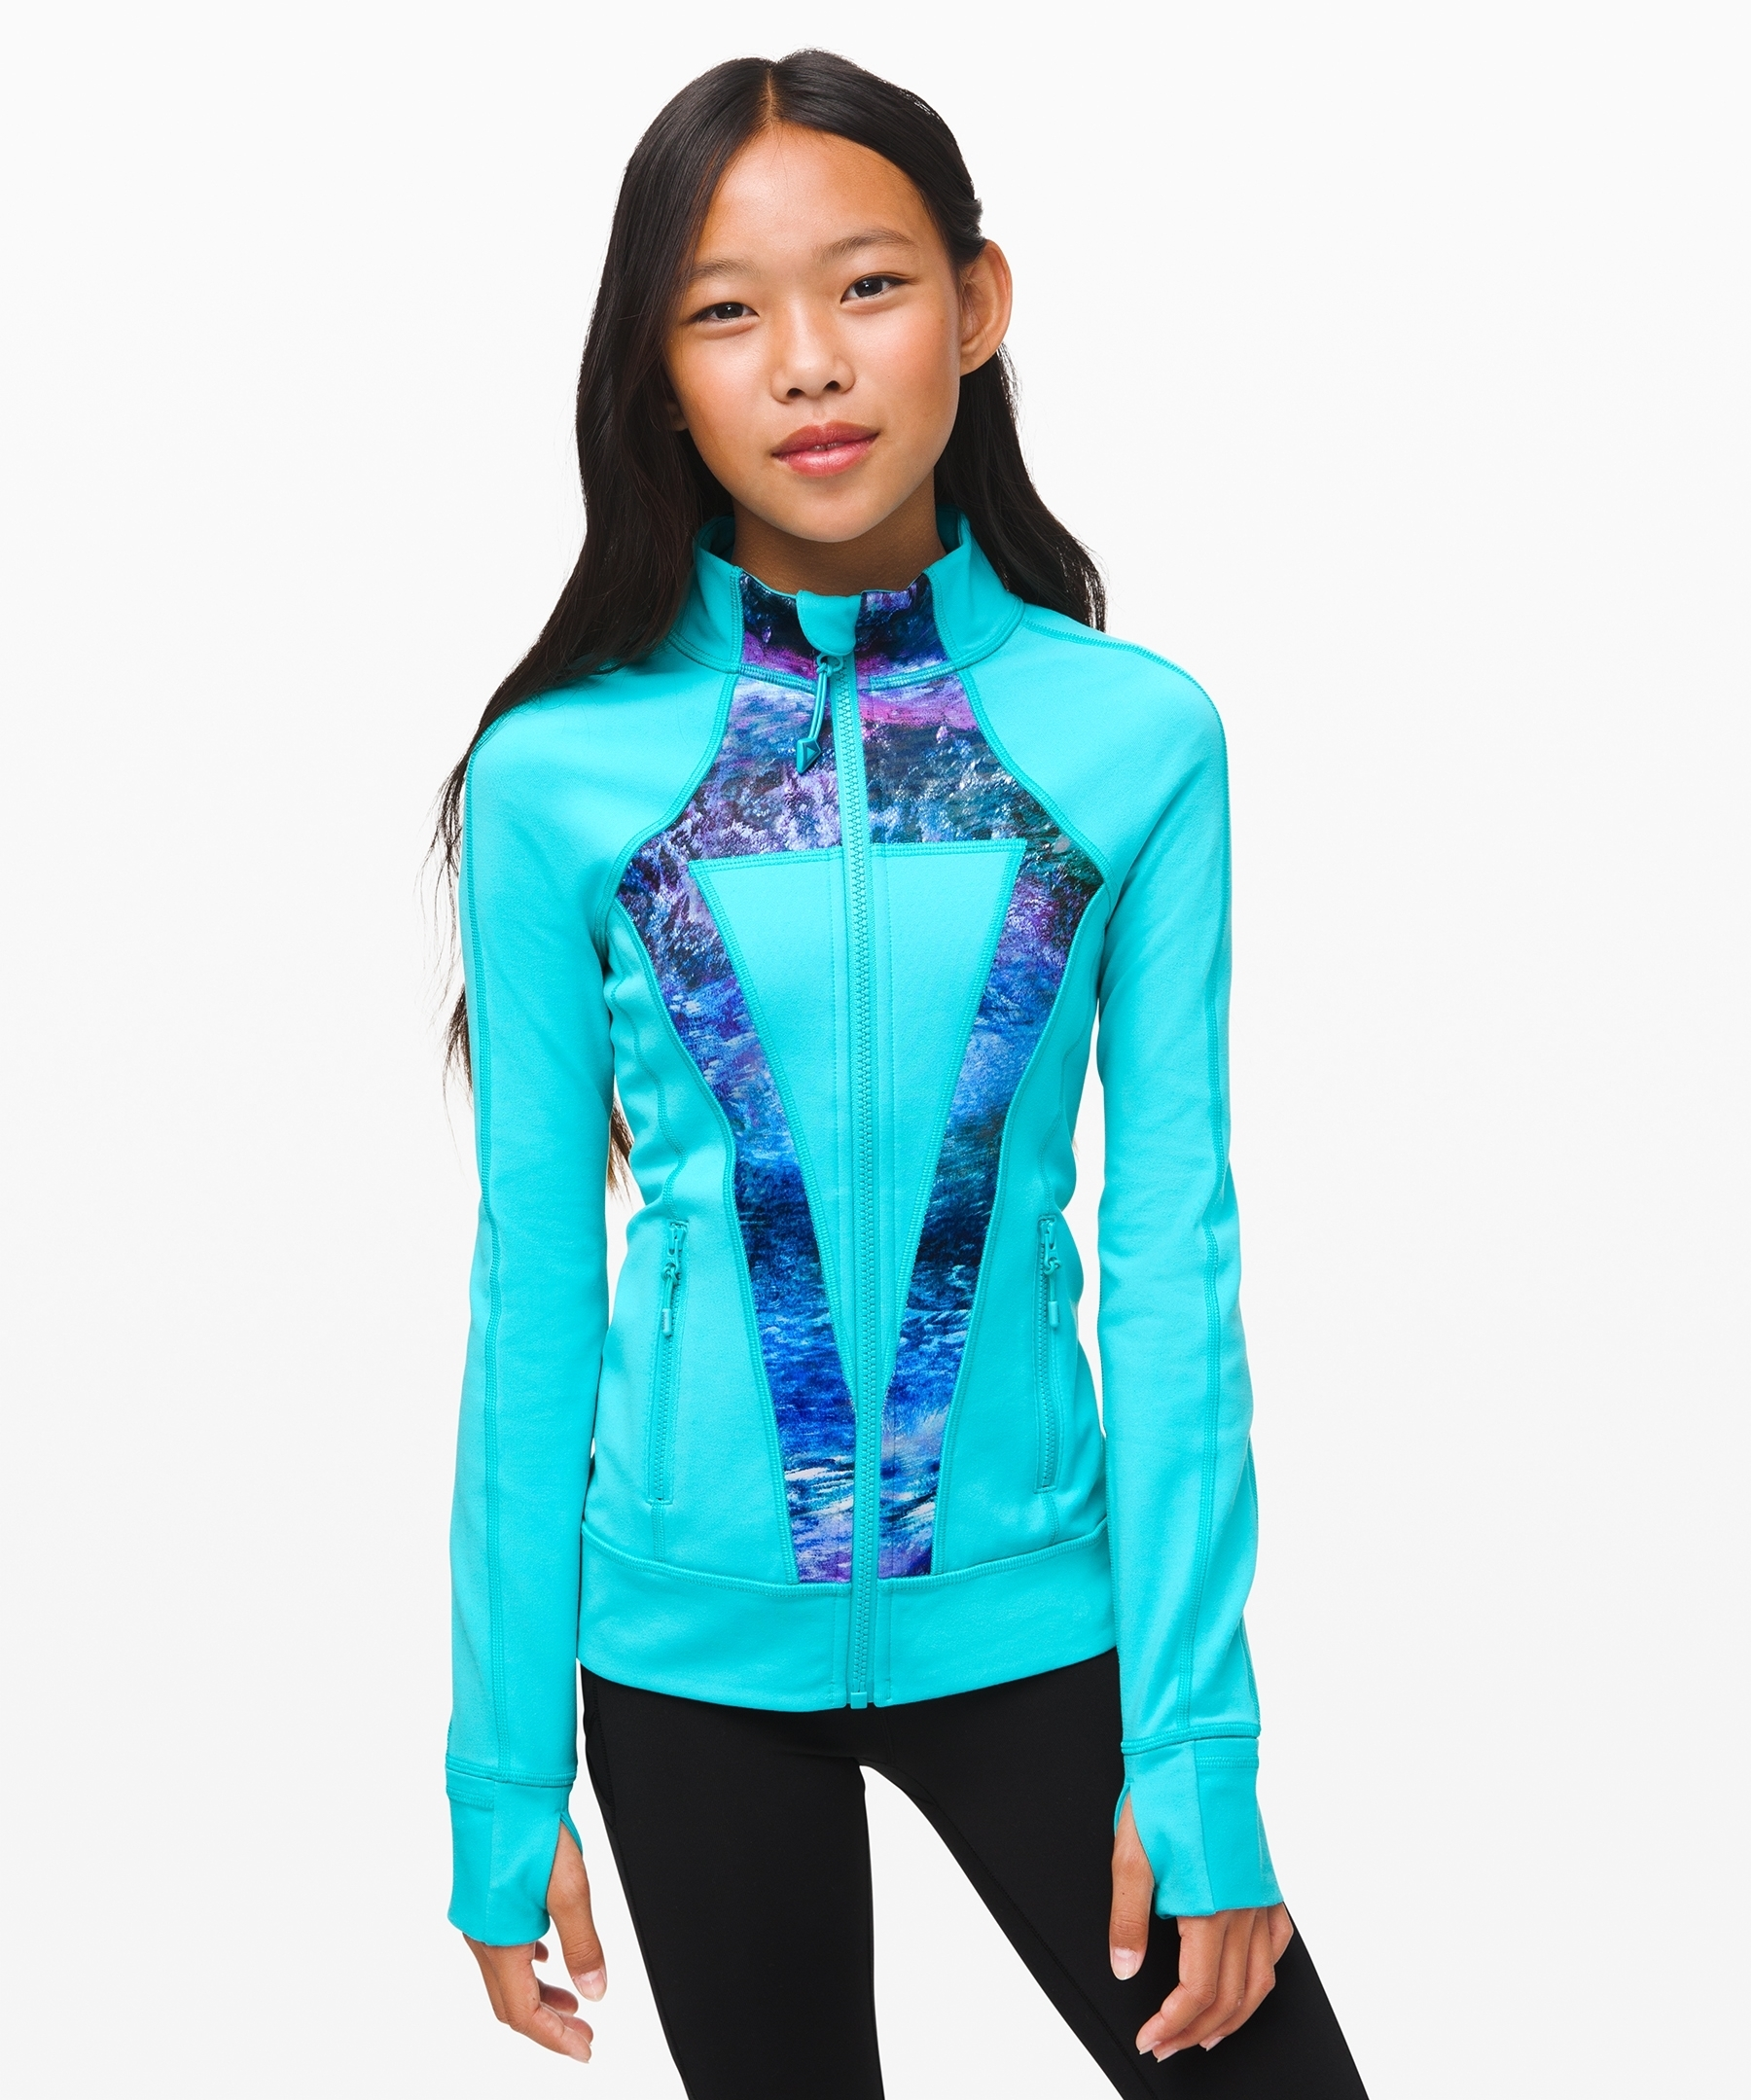 Perfect-Your-Practice-Jacket-For-Girls-Lululemon-CharmPosh